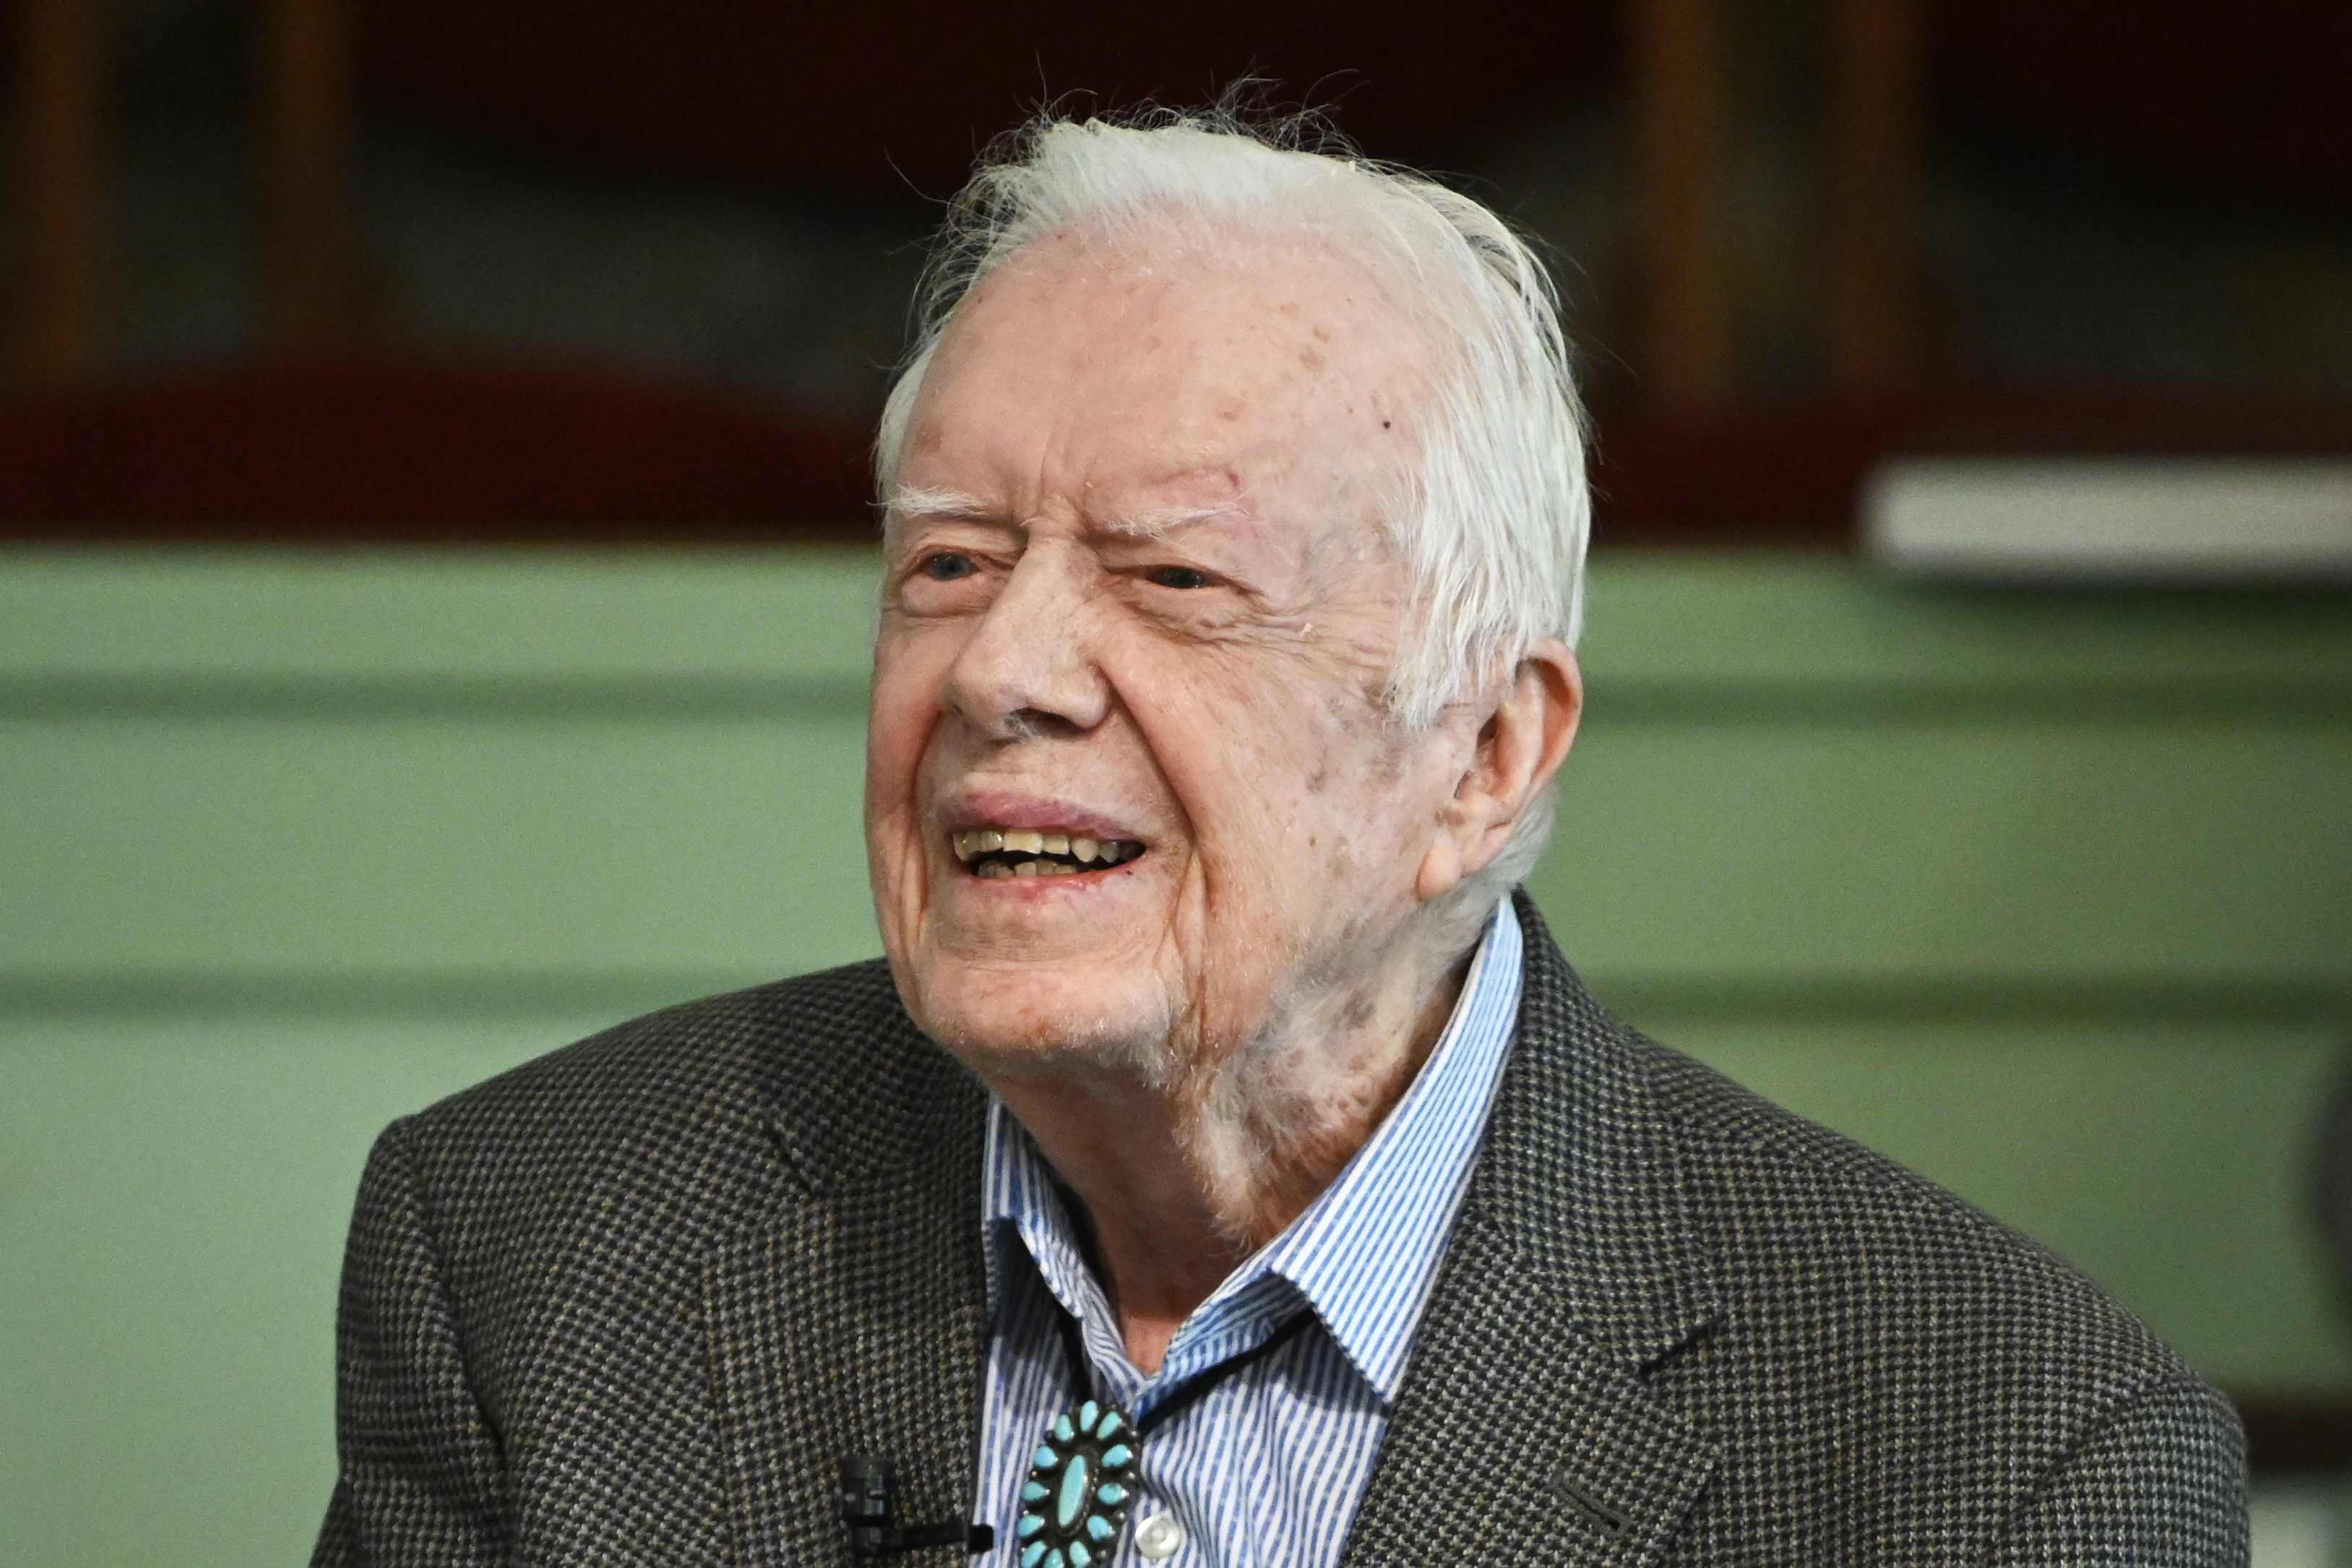 In this Nov. 3, 2019 file photo, former President Jimmy Carter teaches Sunday school at Maranatha Baptist Church in Plains, Ga.